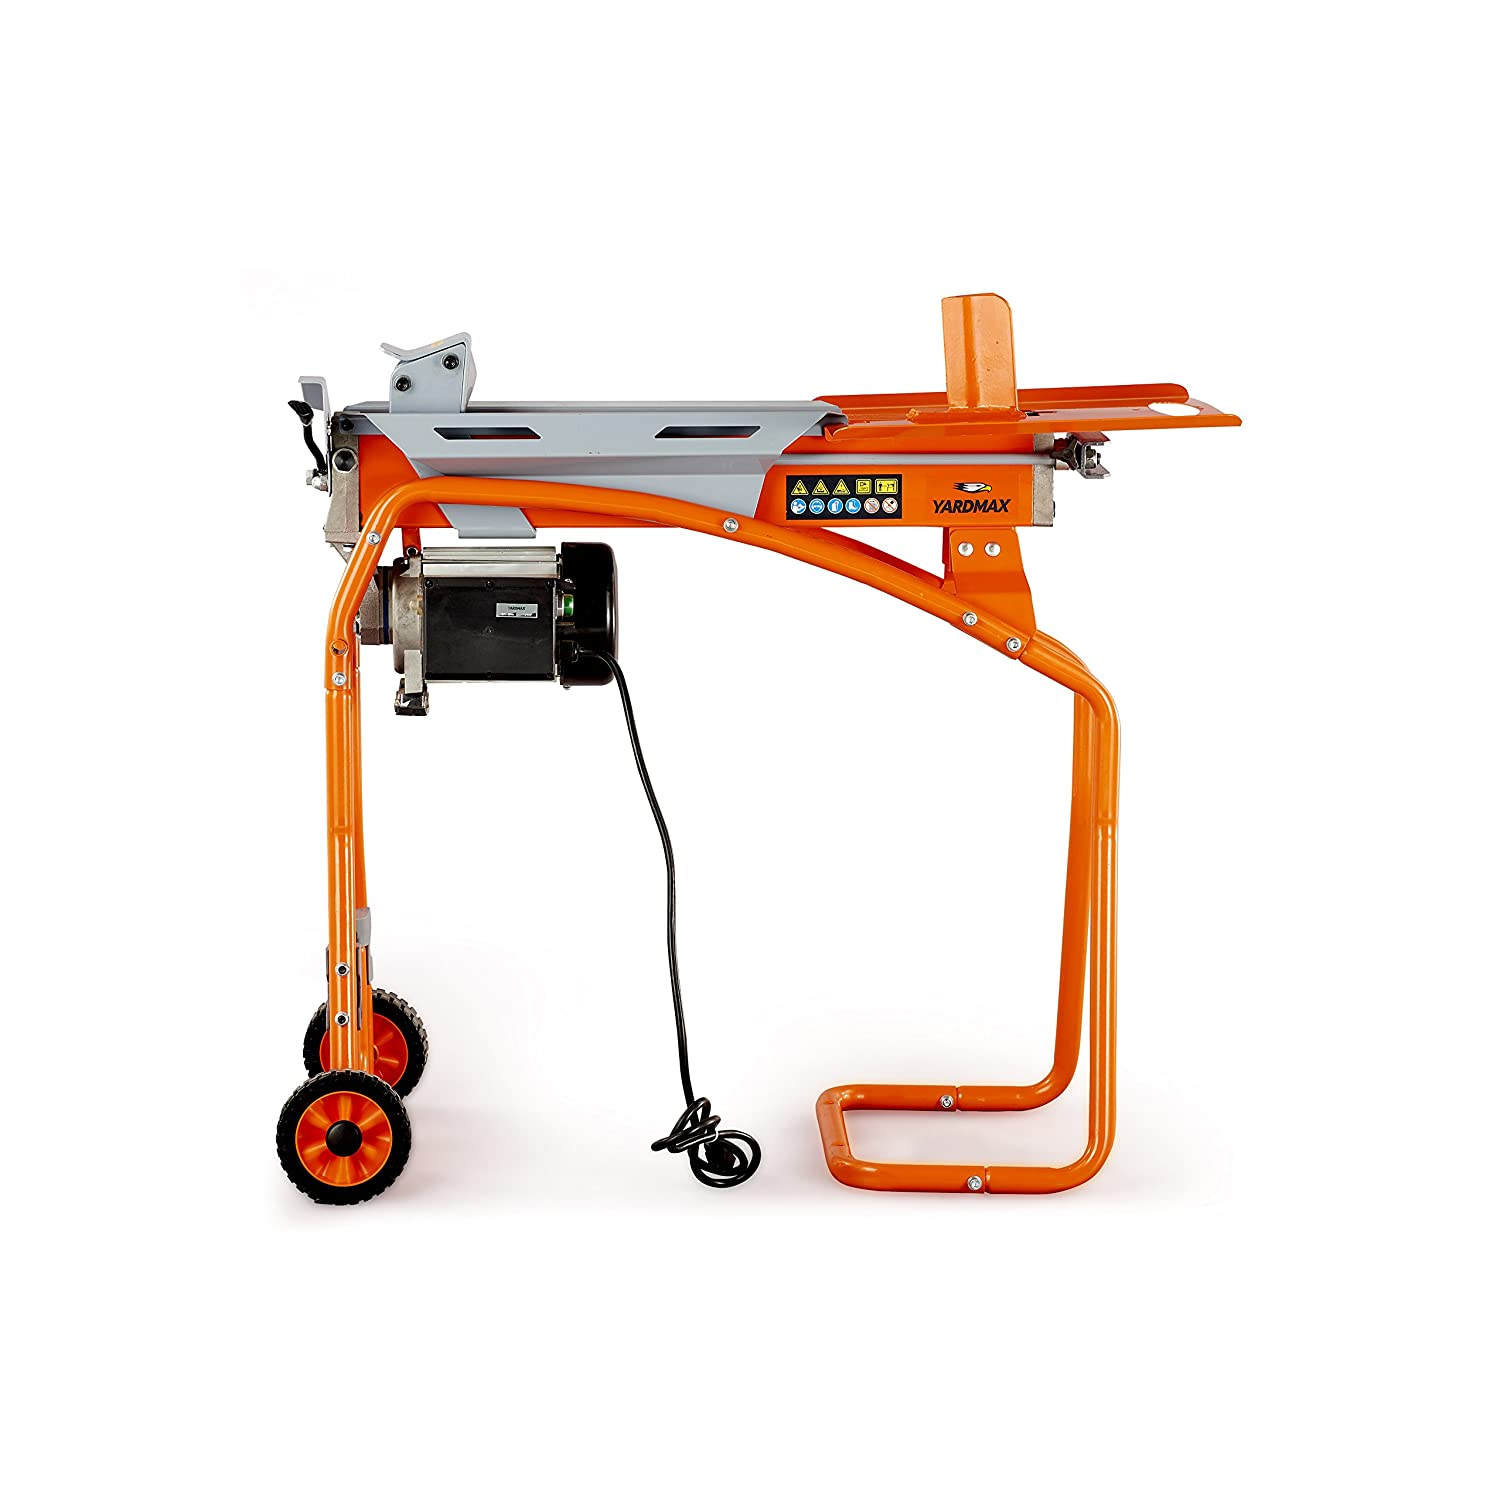 YARDMAX Best wood splitter